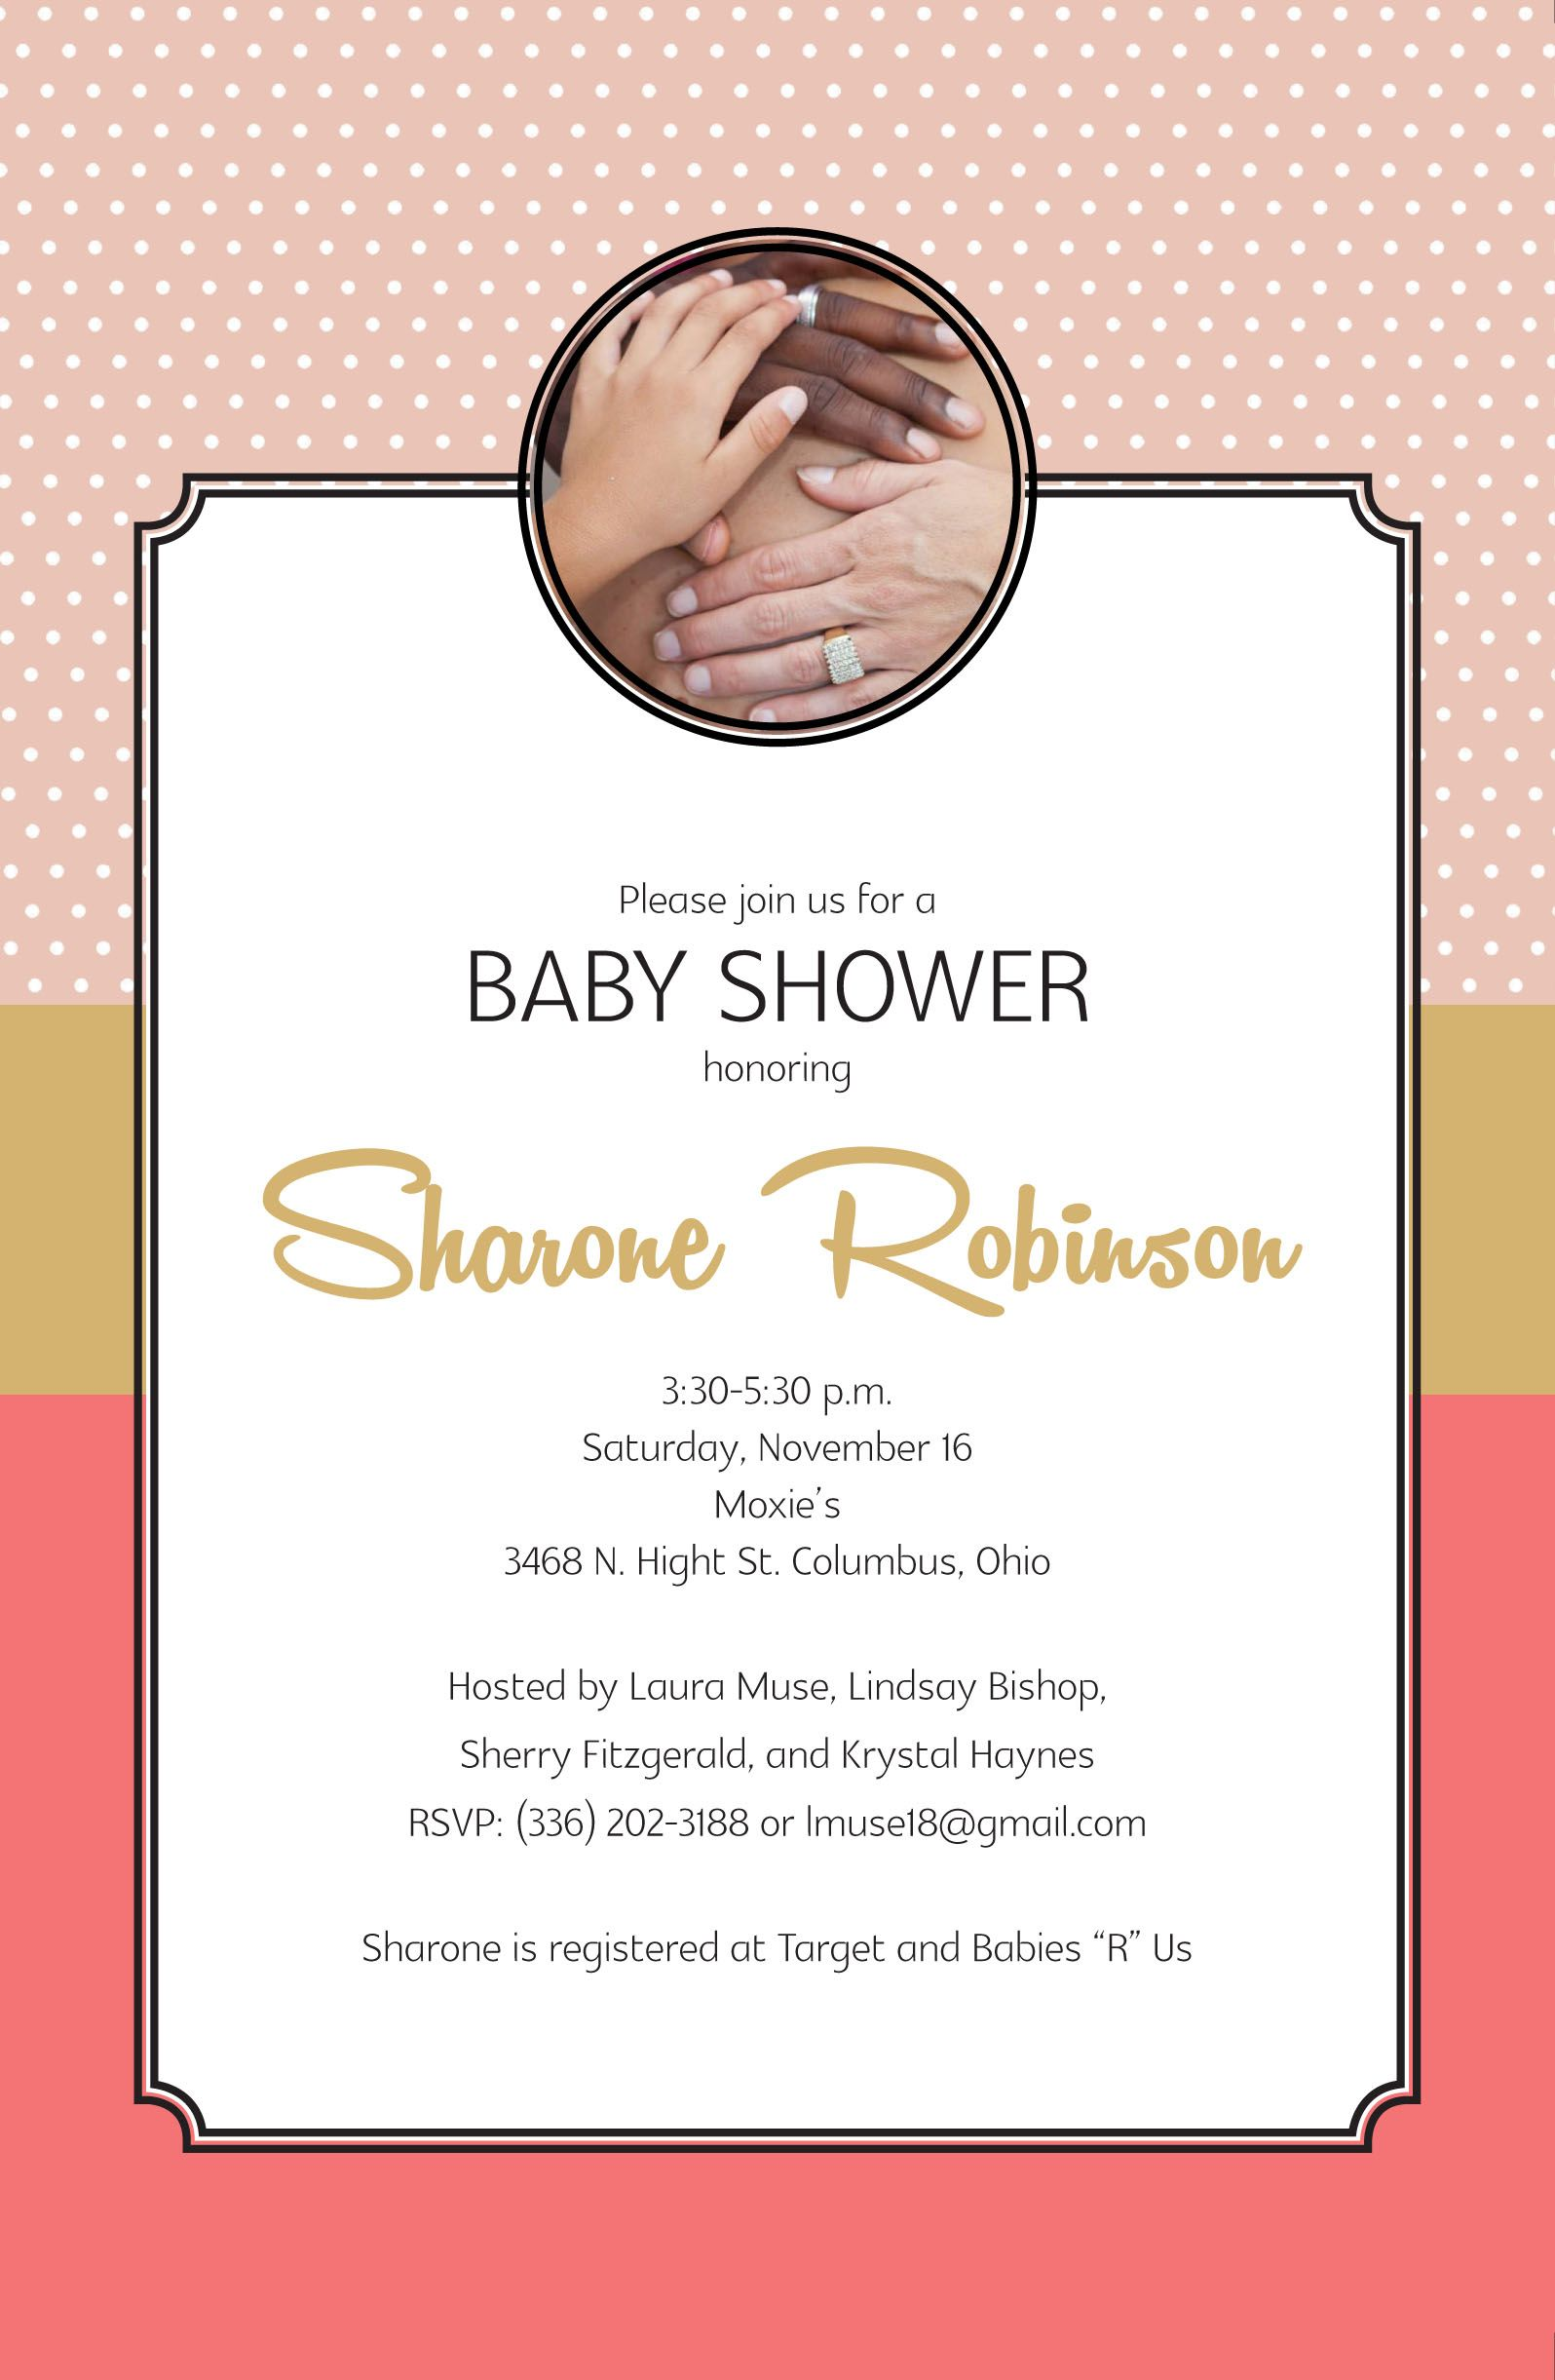 Personalized baby shower invitation.